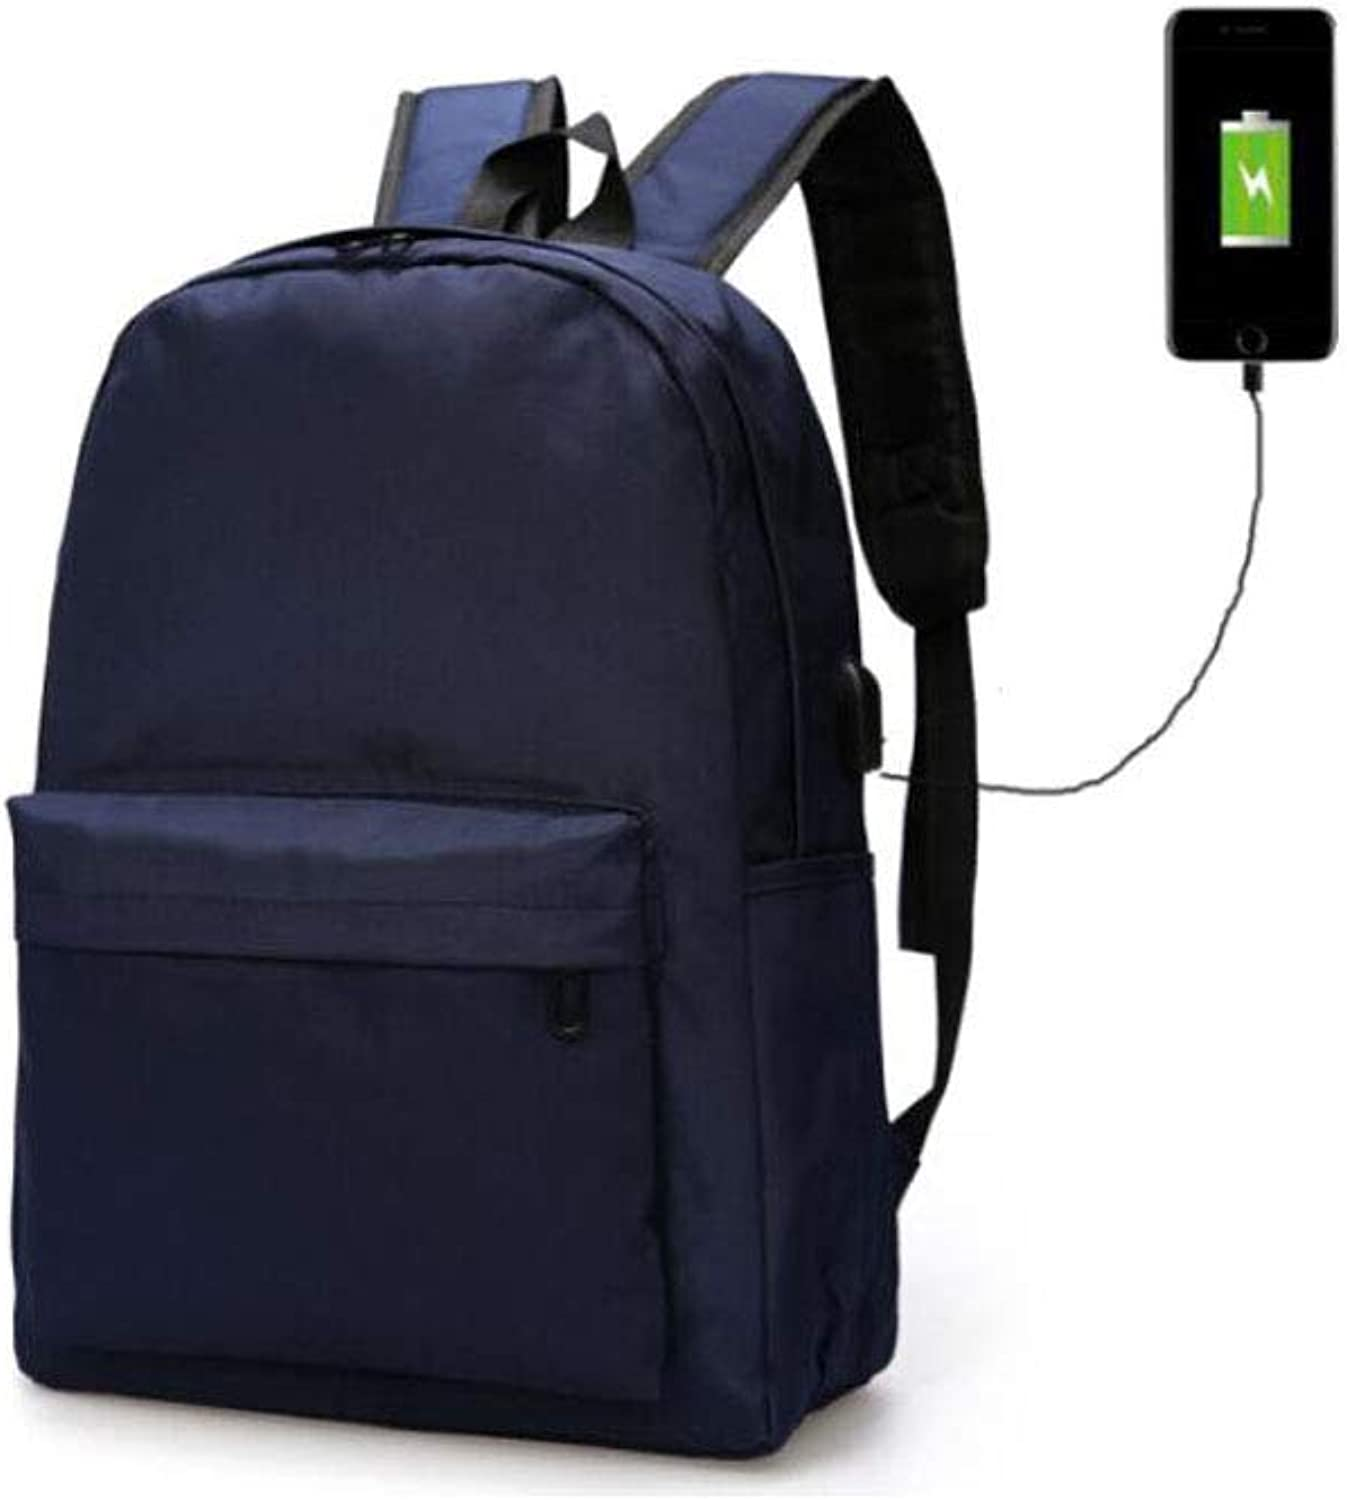 Solid color Rucksack, Men's Special Classic Business Backpack, blueee 17.2  12.4  5.2 (inches)